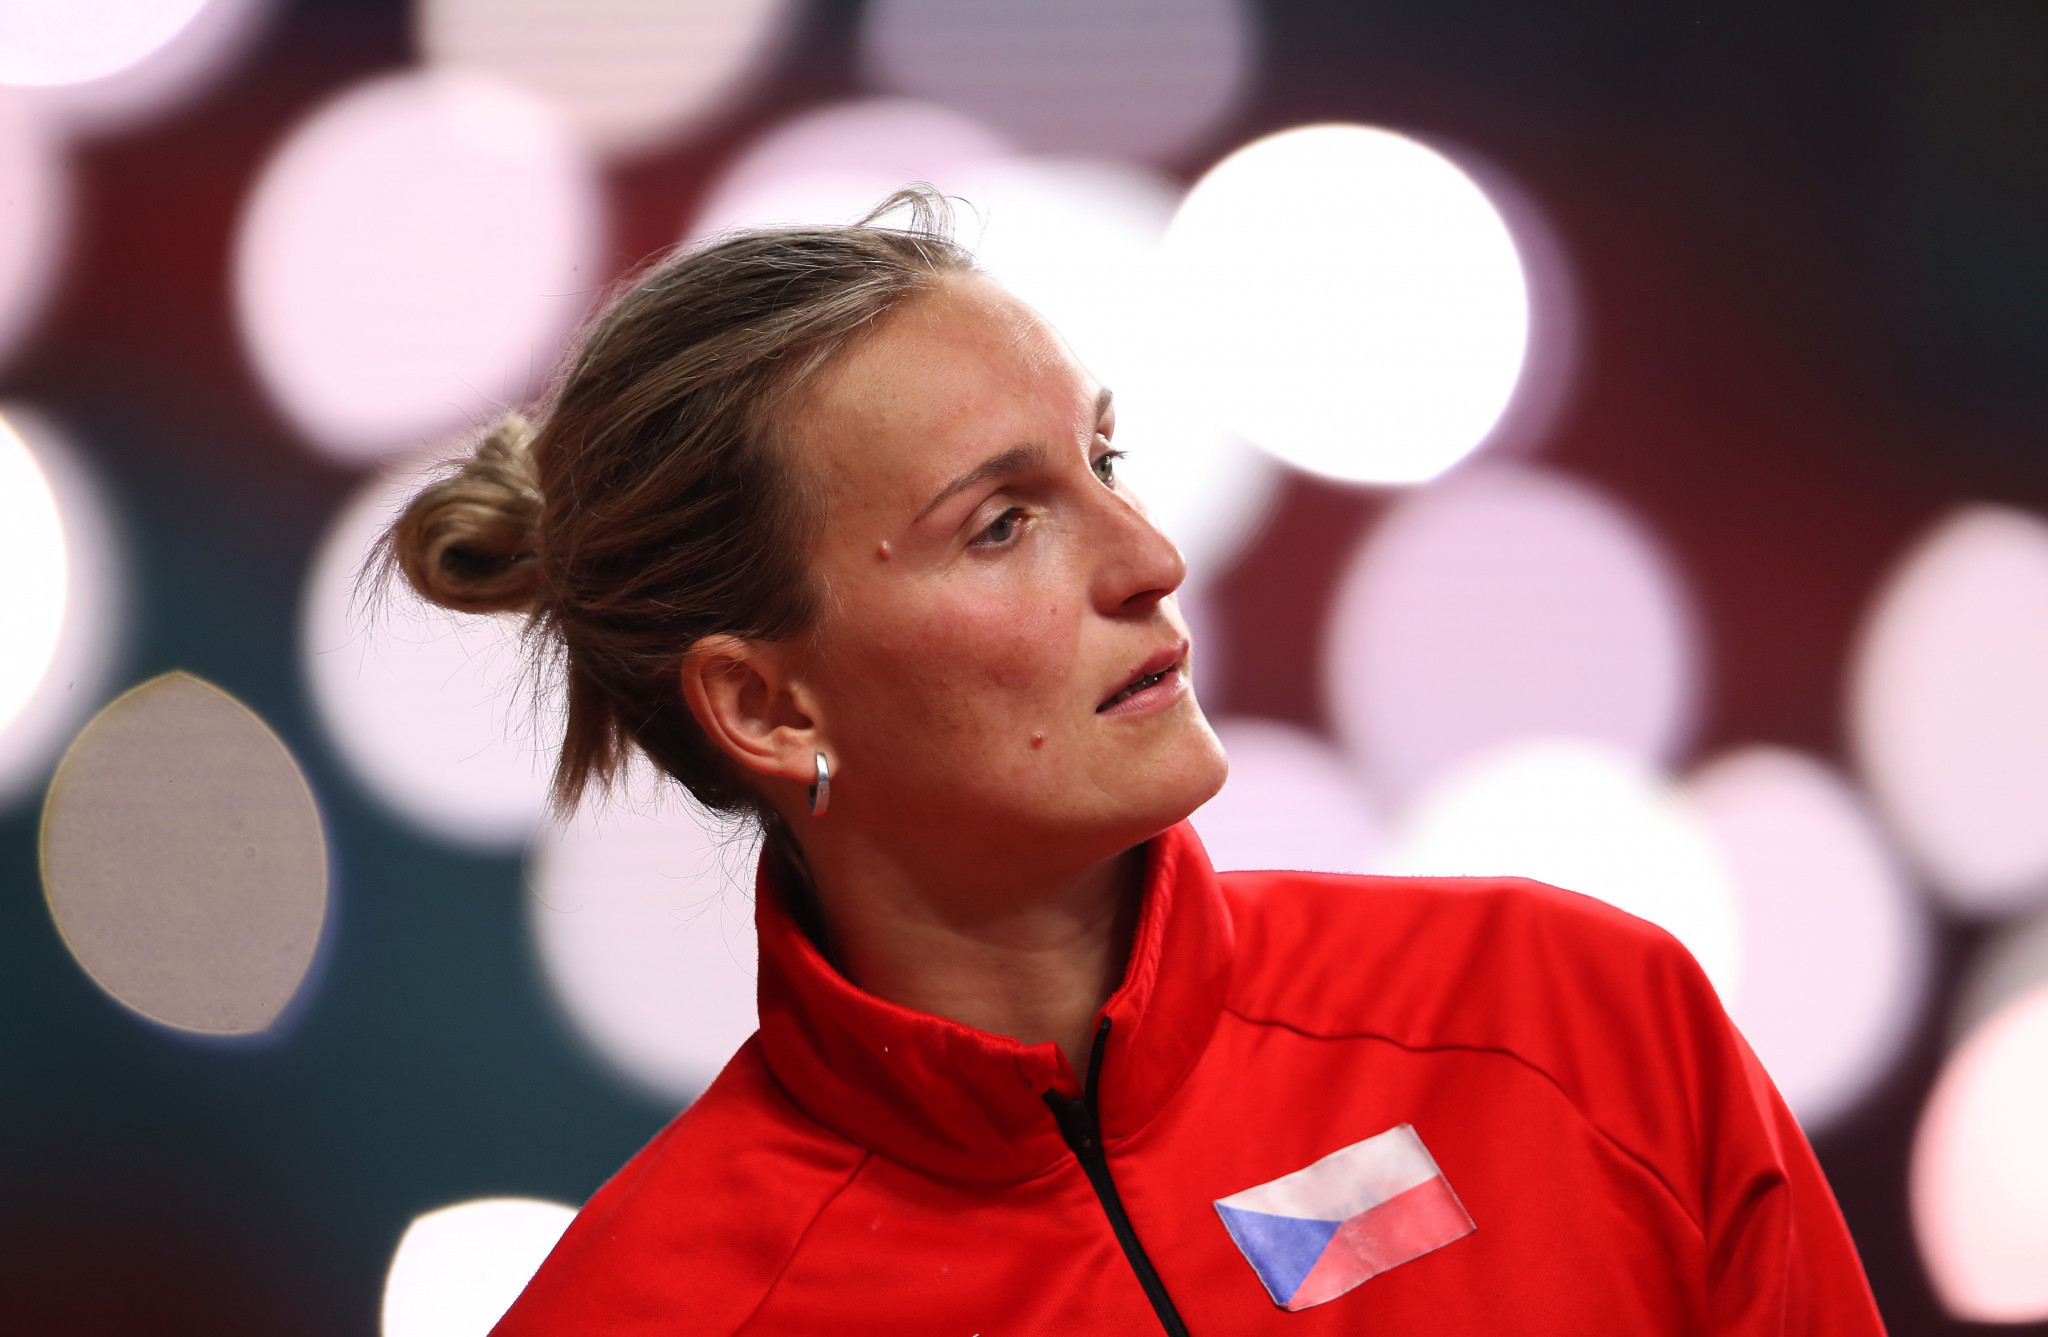 Barbora Špotáková will decide whether to compete at the rescheduled Tokyo 2020 Olympic Games later this year ©Getty Images